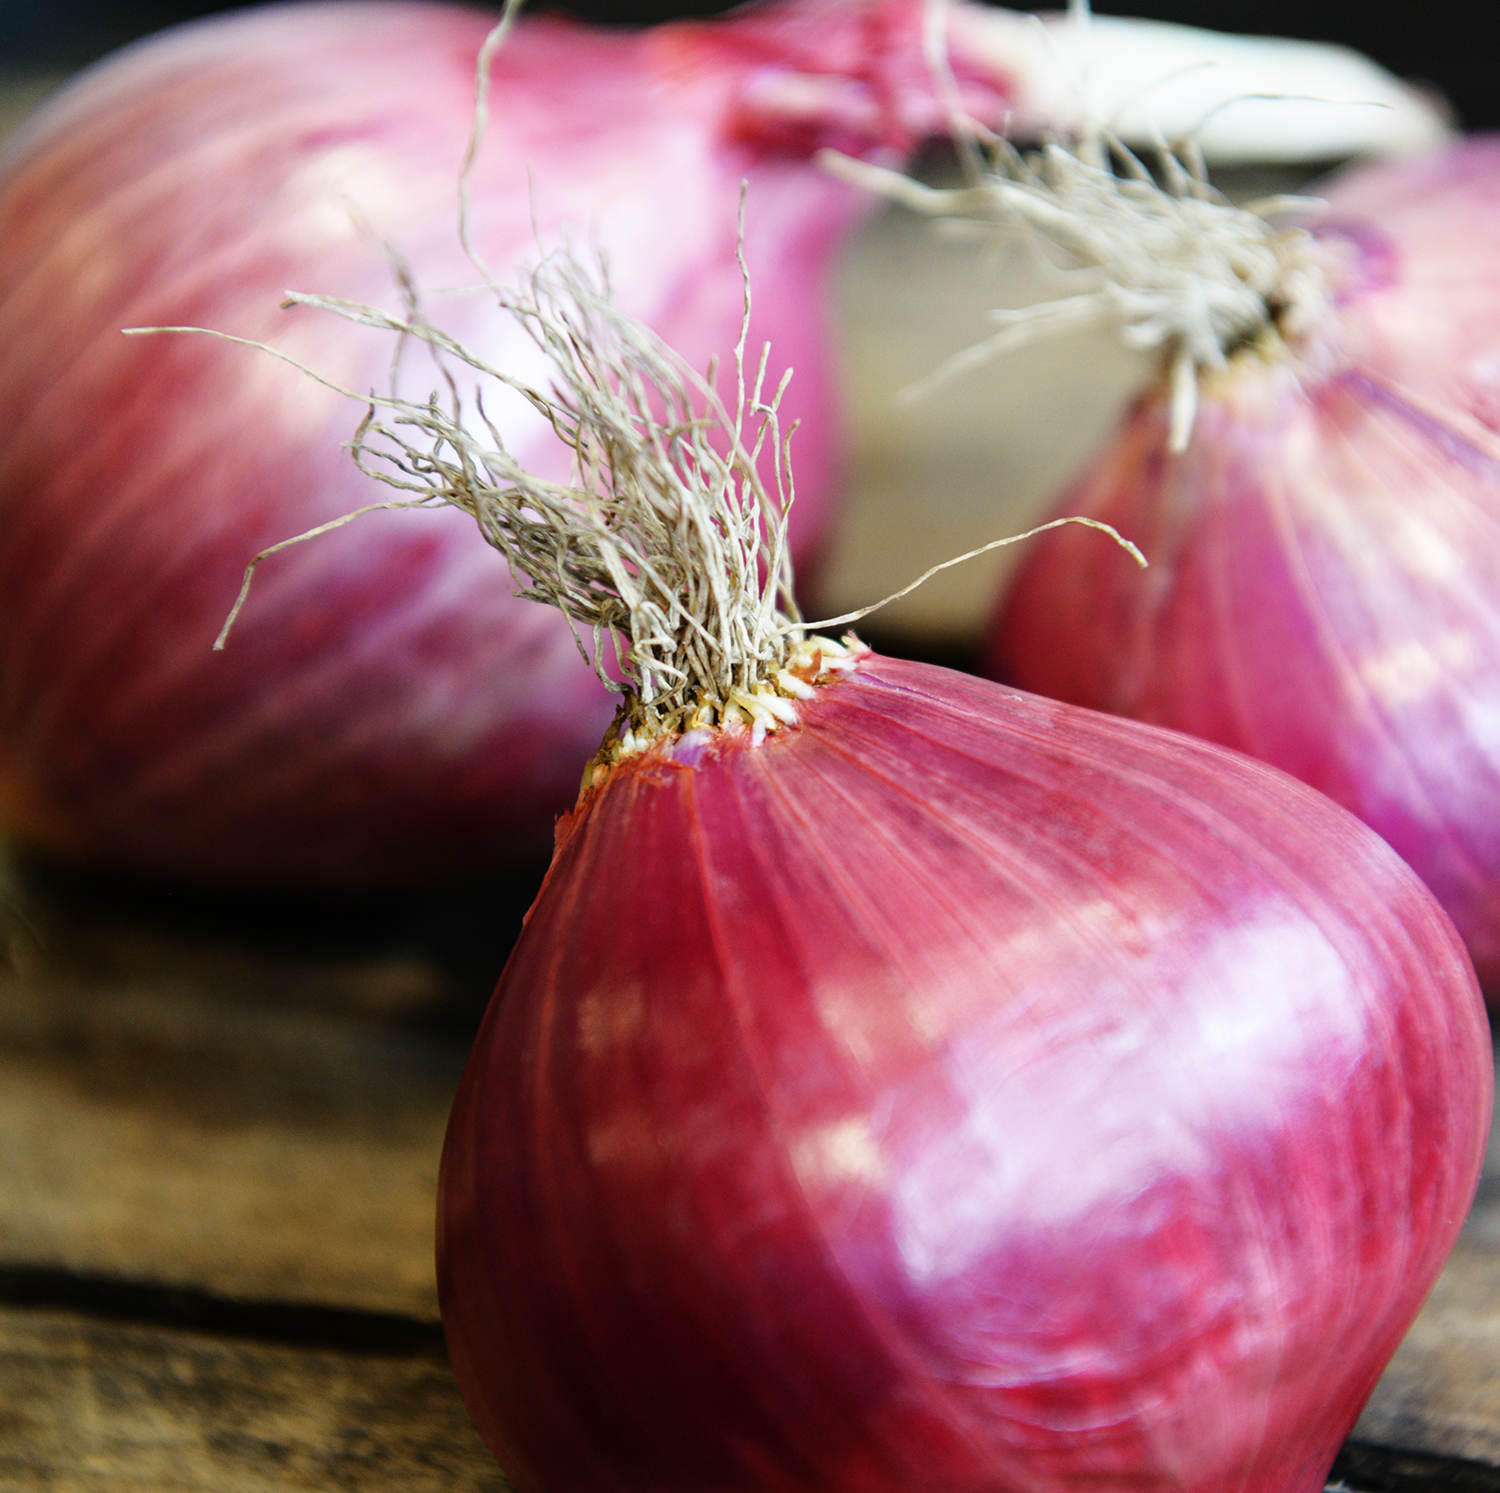 2. Onions, garlic and potatoes like to hang out together. - True or False?